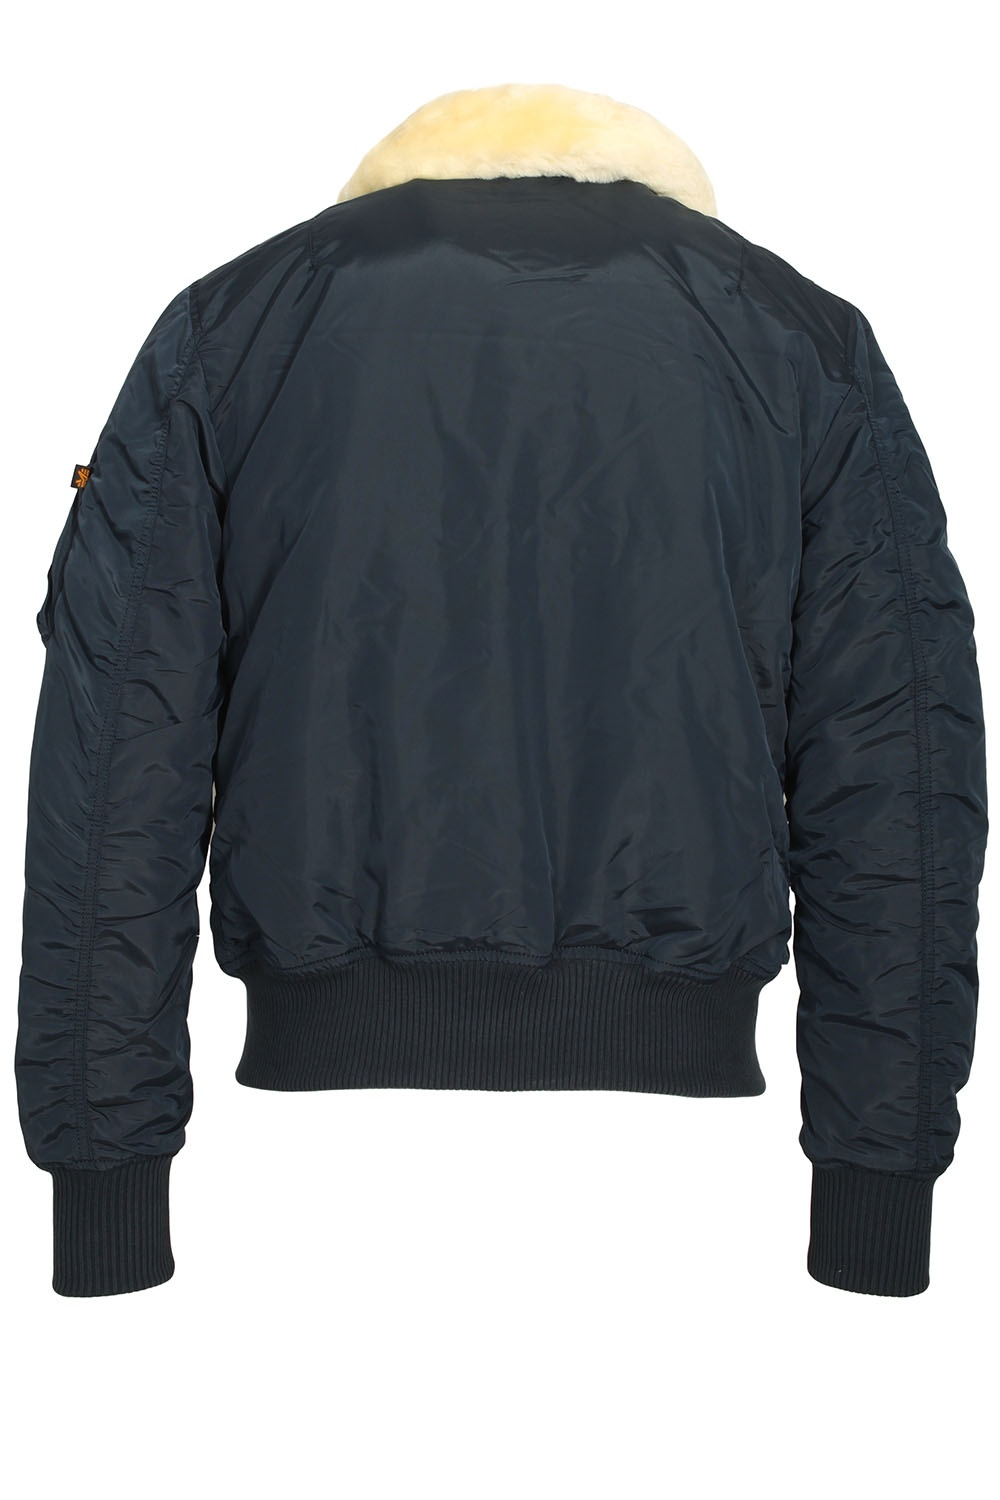 alpha industries injector iii rep blue shear collar bomber jacket. Black Bedroom Furniture Sets. Home Design Ideas